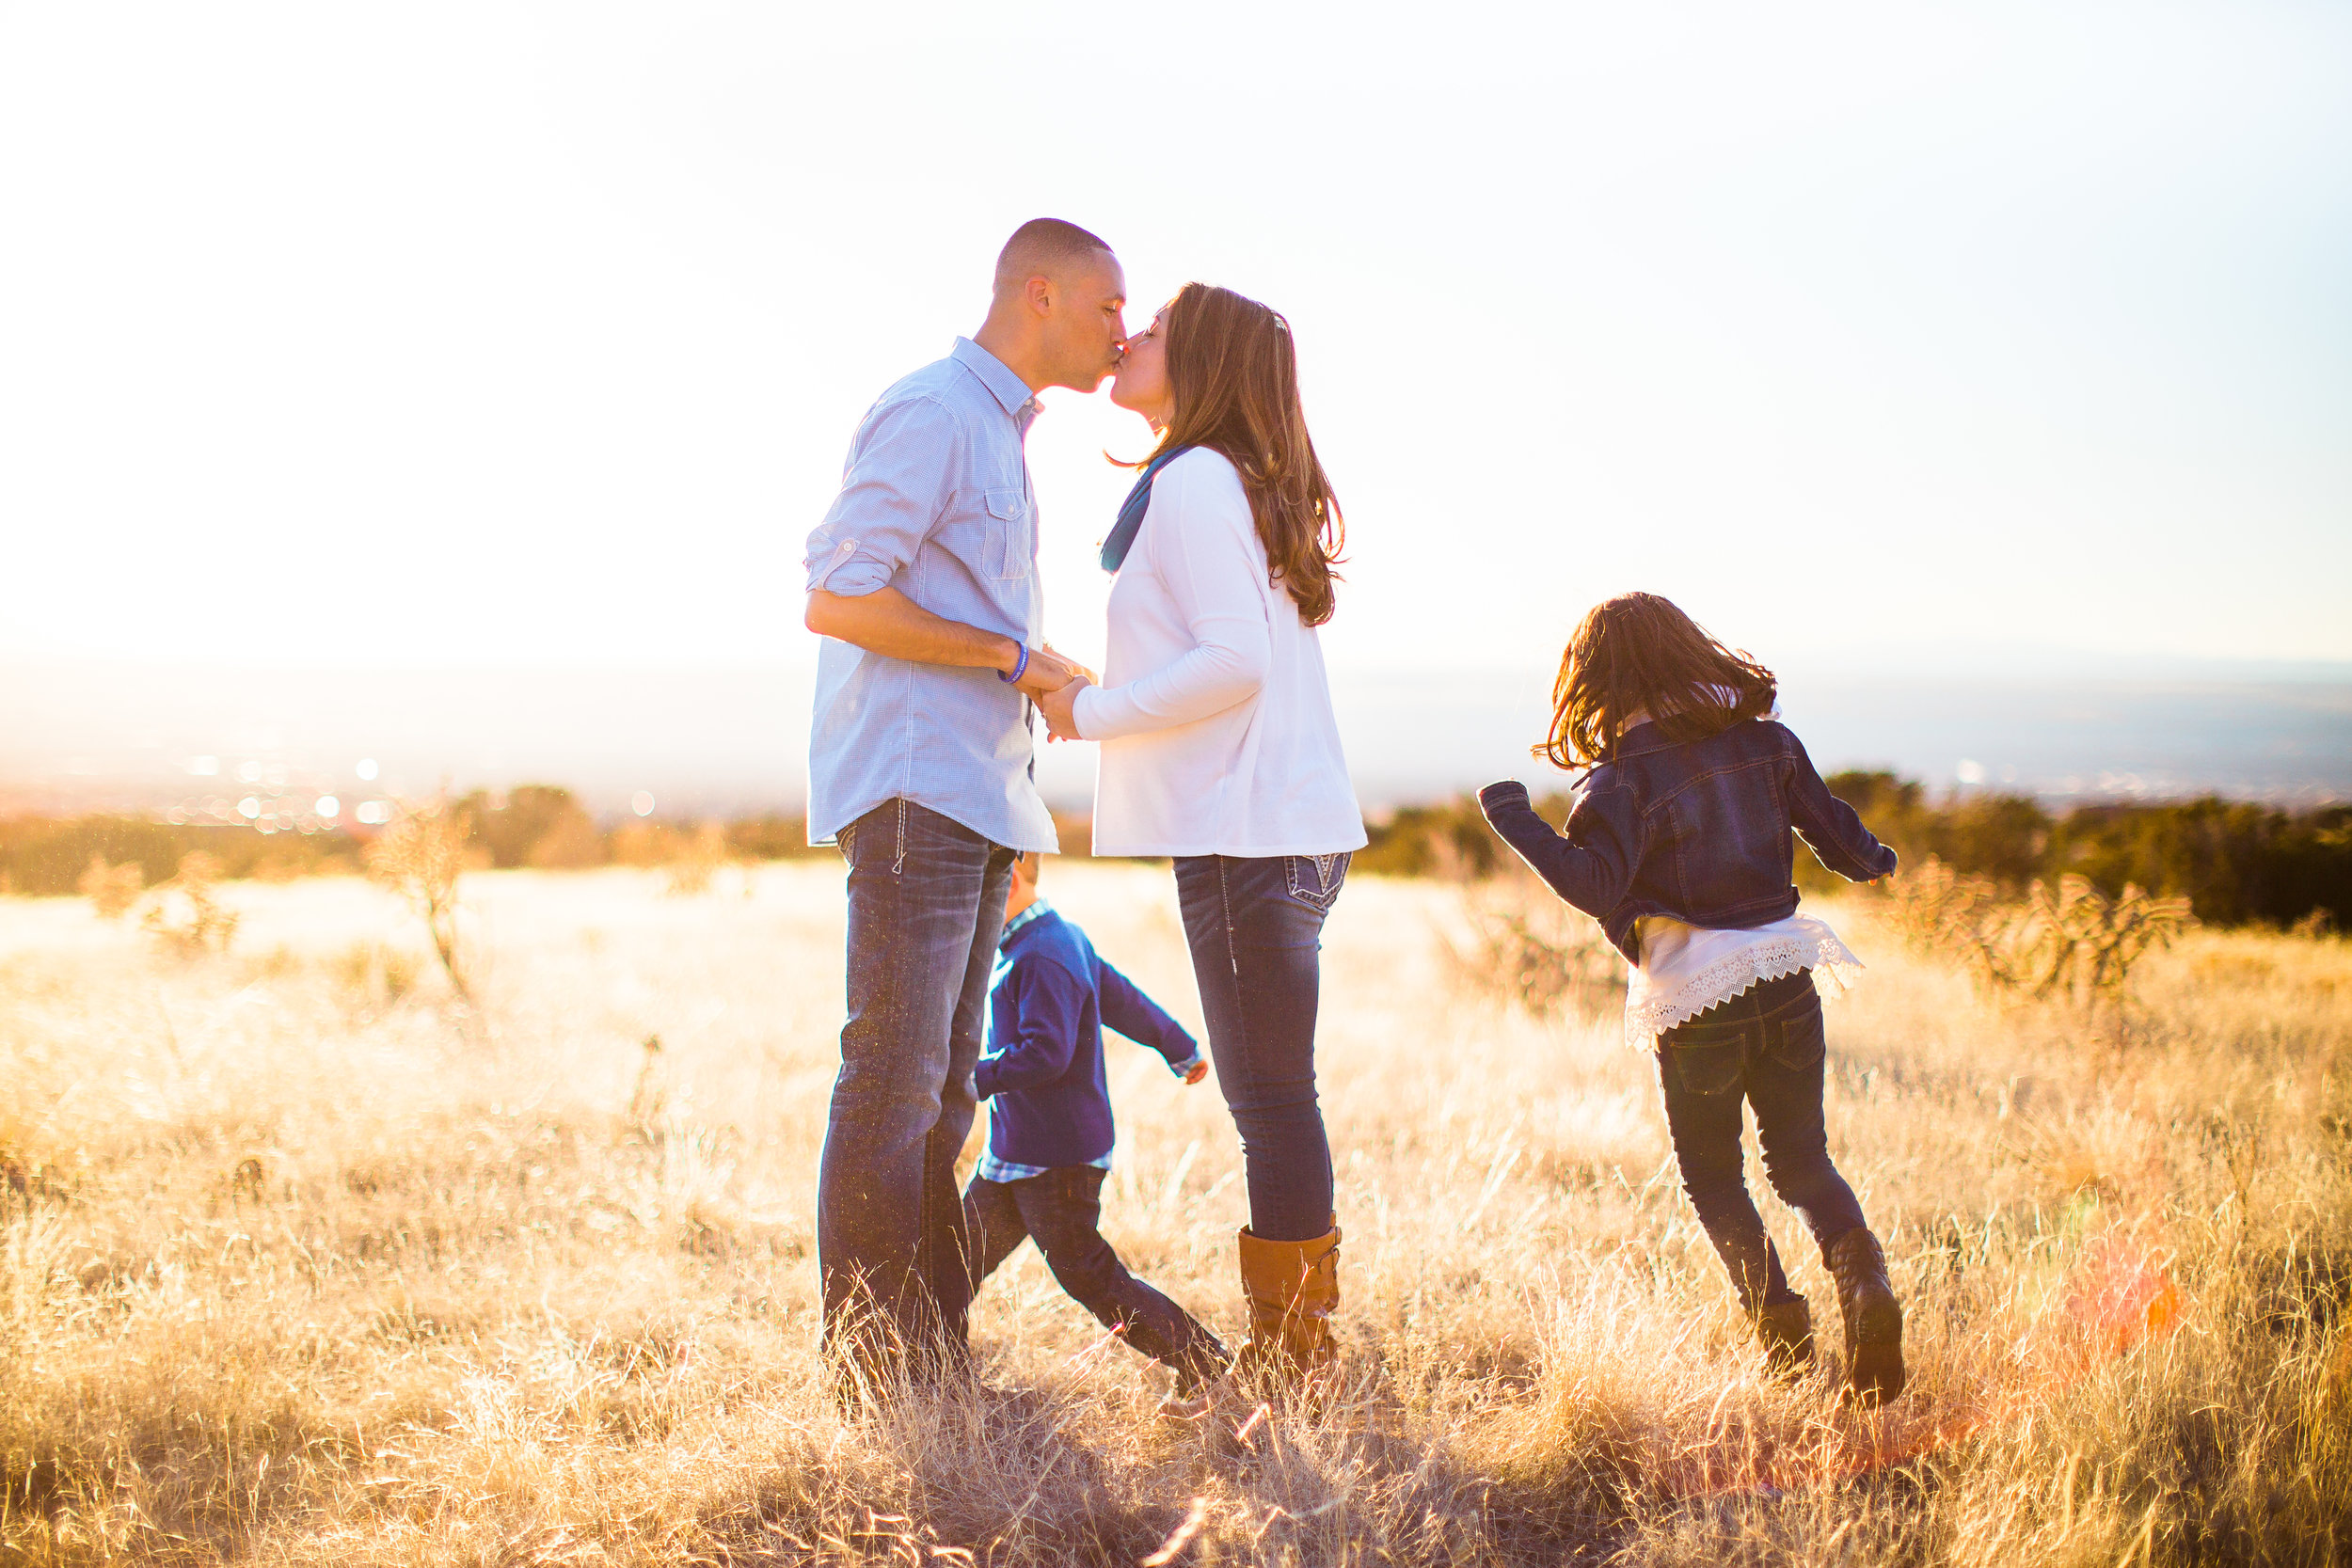 A Sandia Foothill Family Session